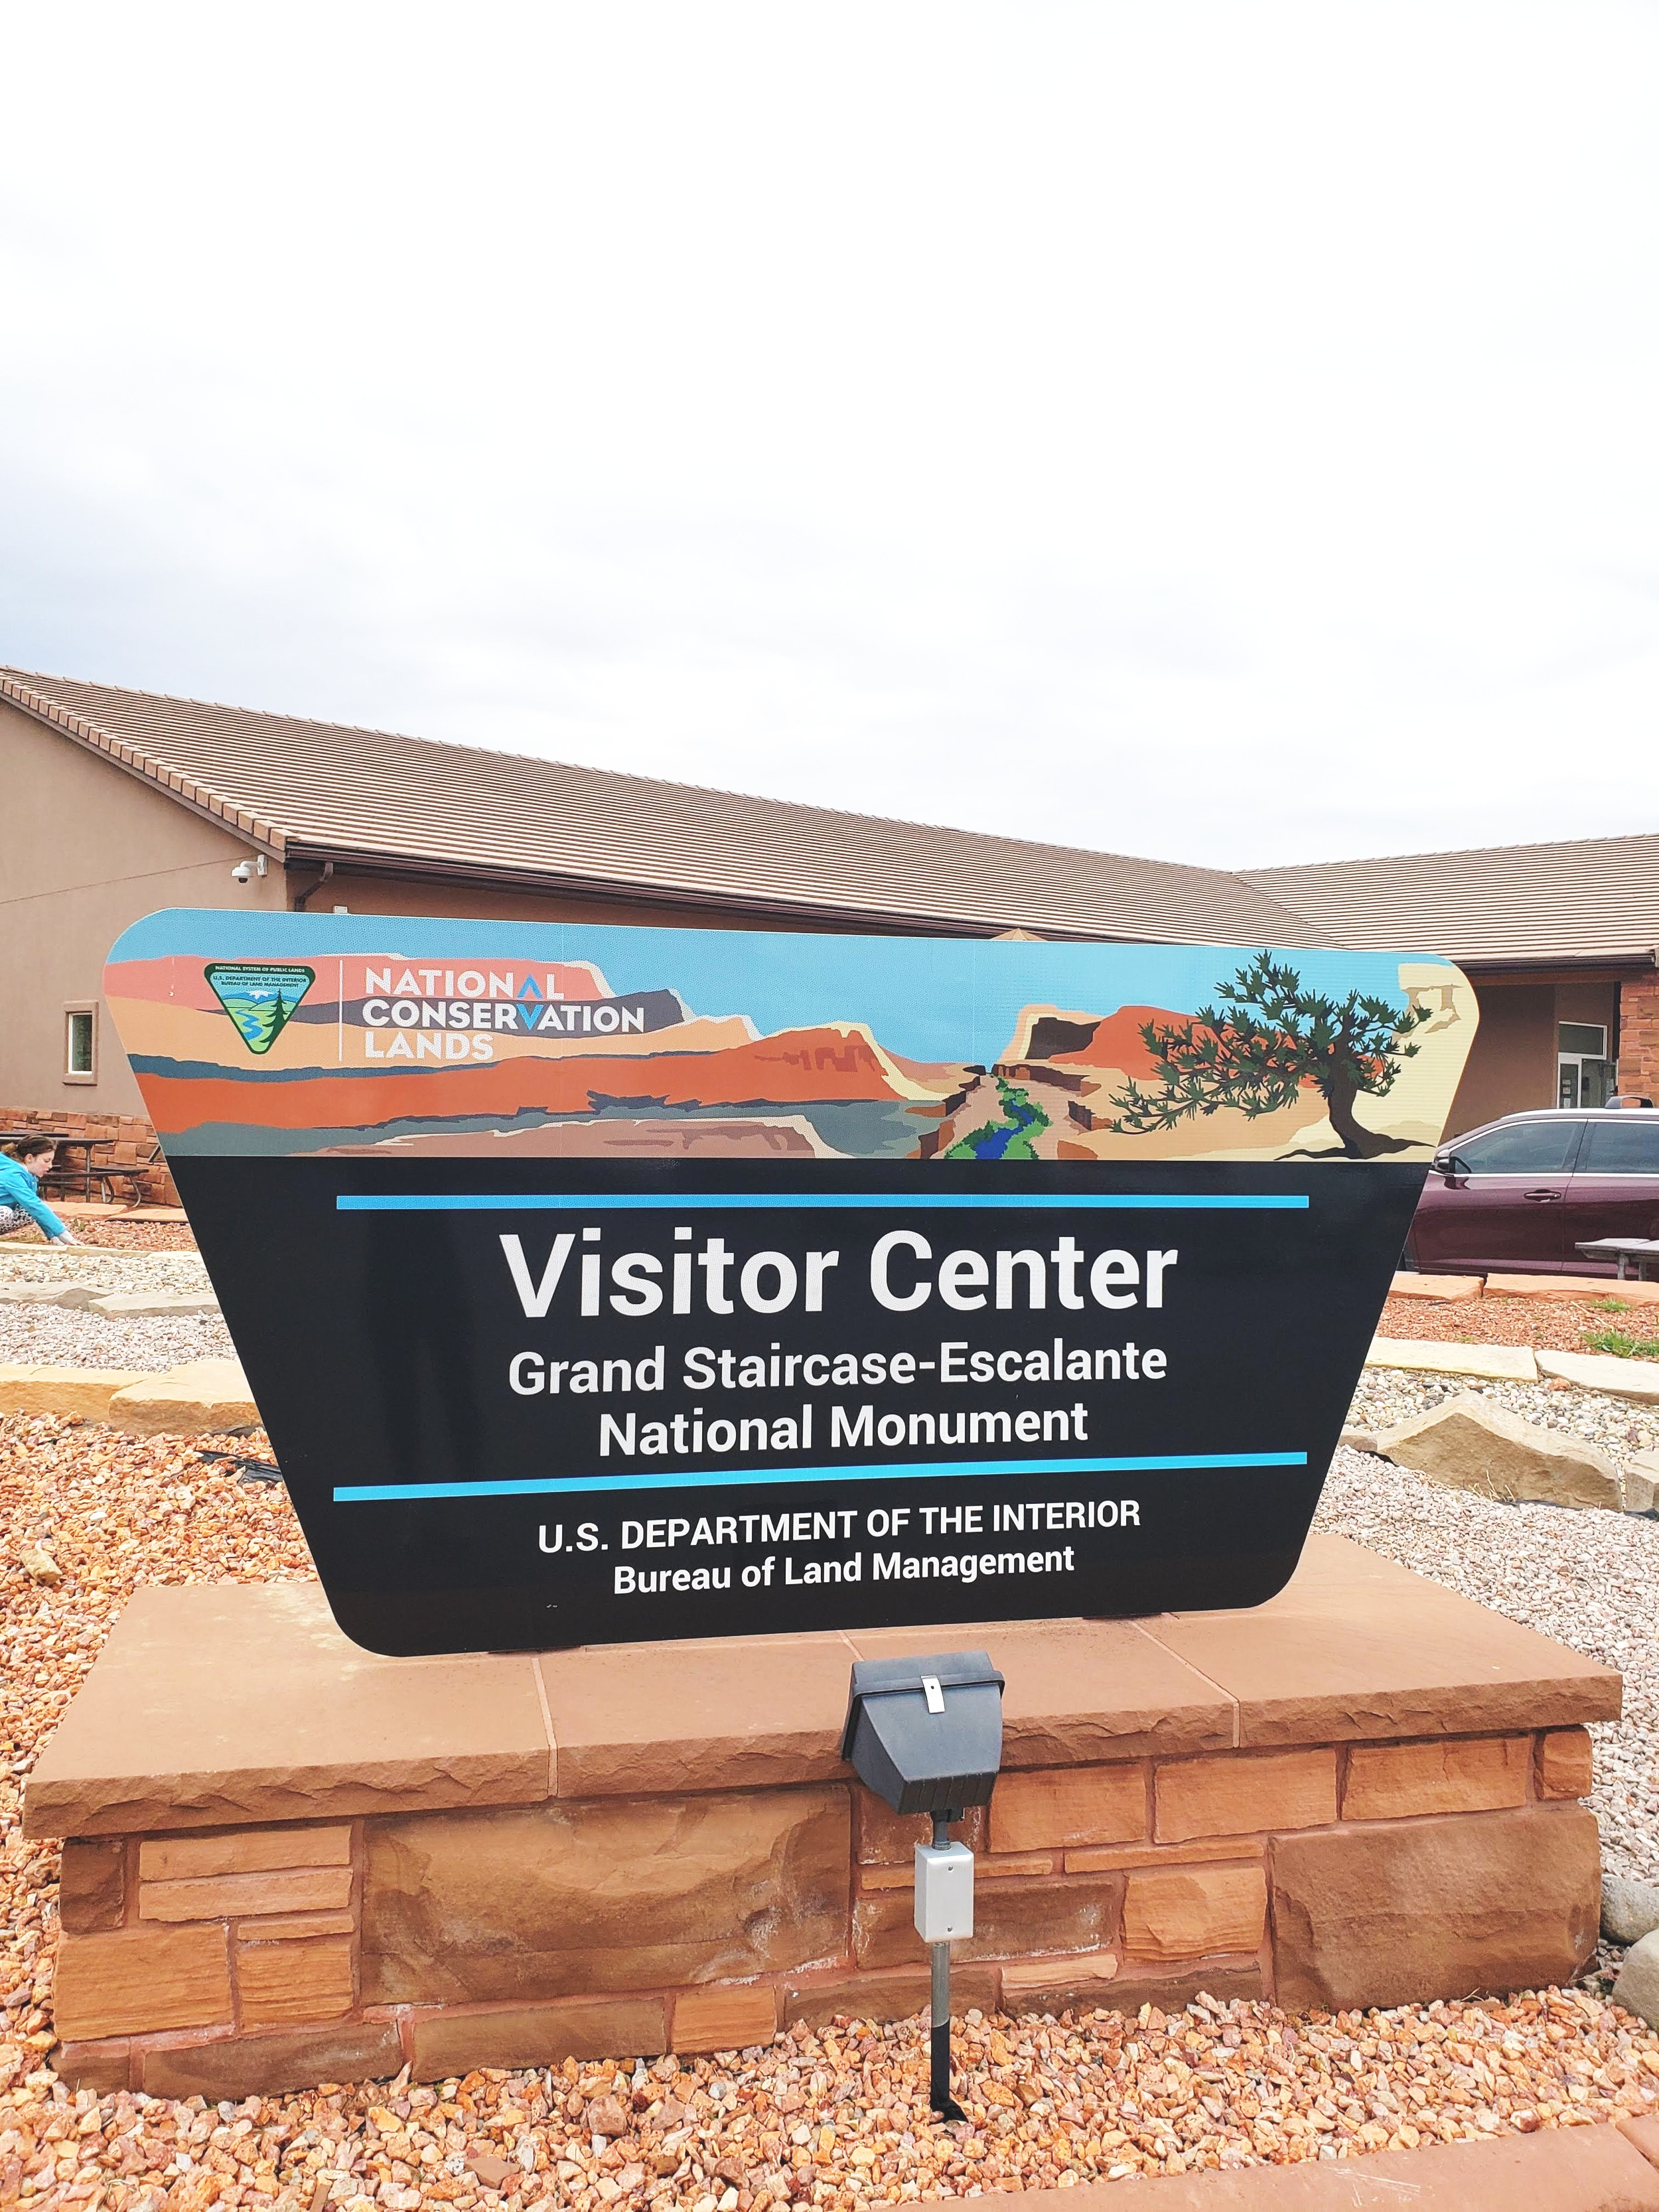 FYI : if you google it, it will say BLM Visitor Center in Kanab on google maps but it is the visitor center for Staircase Escalante Visitor Center.